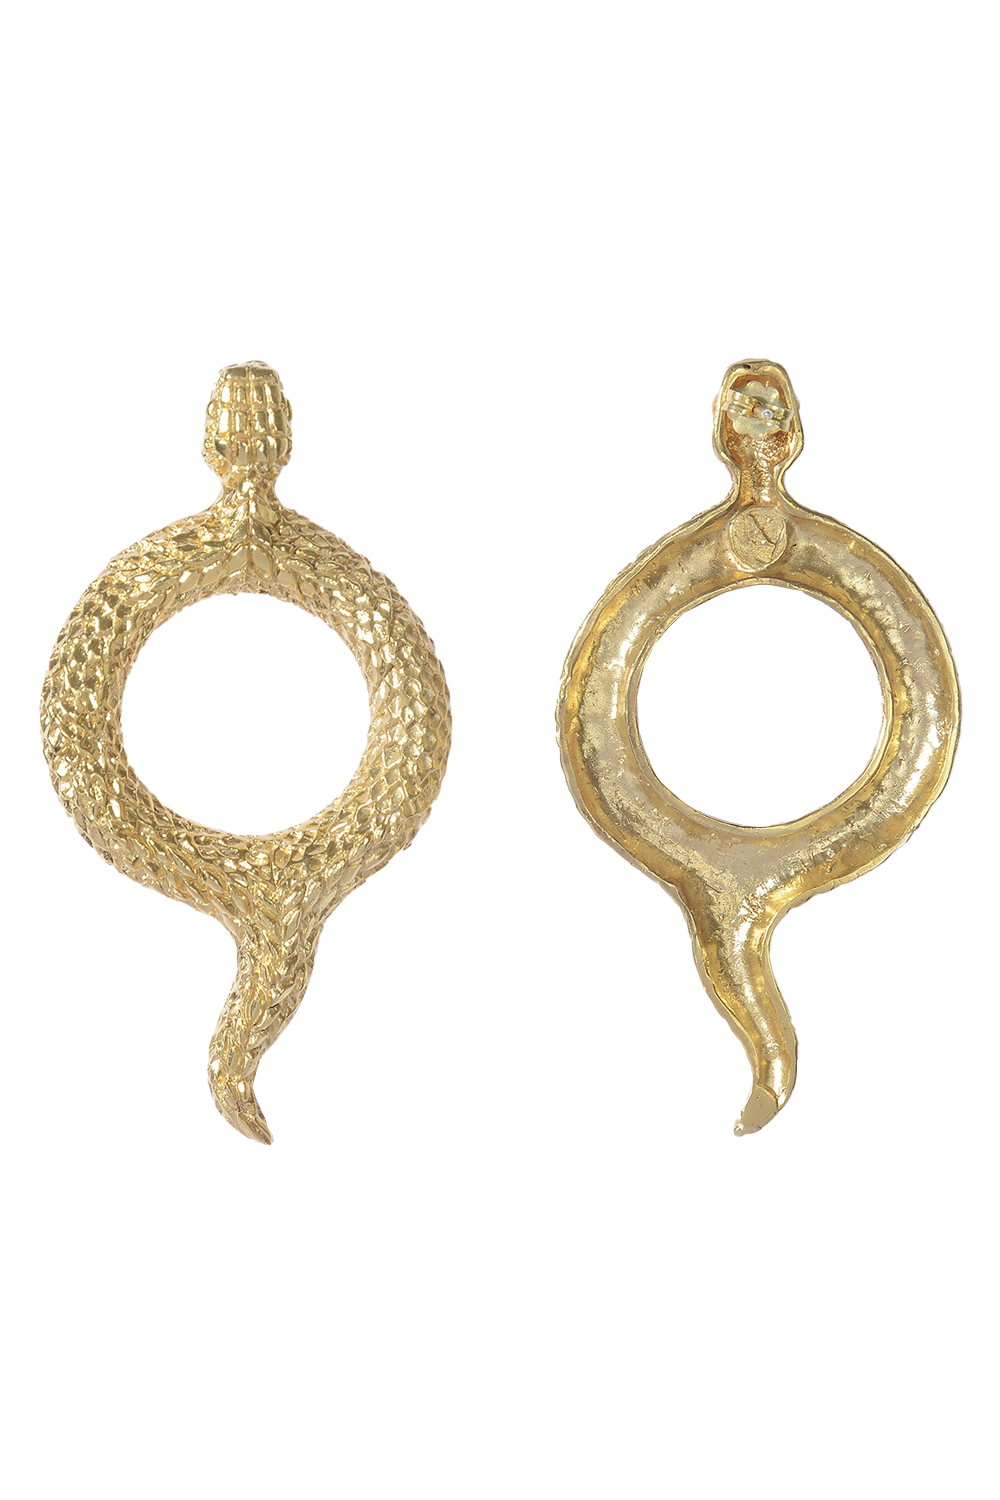 antique snake earrings